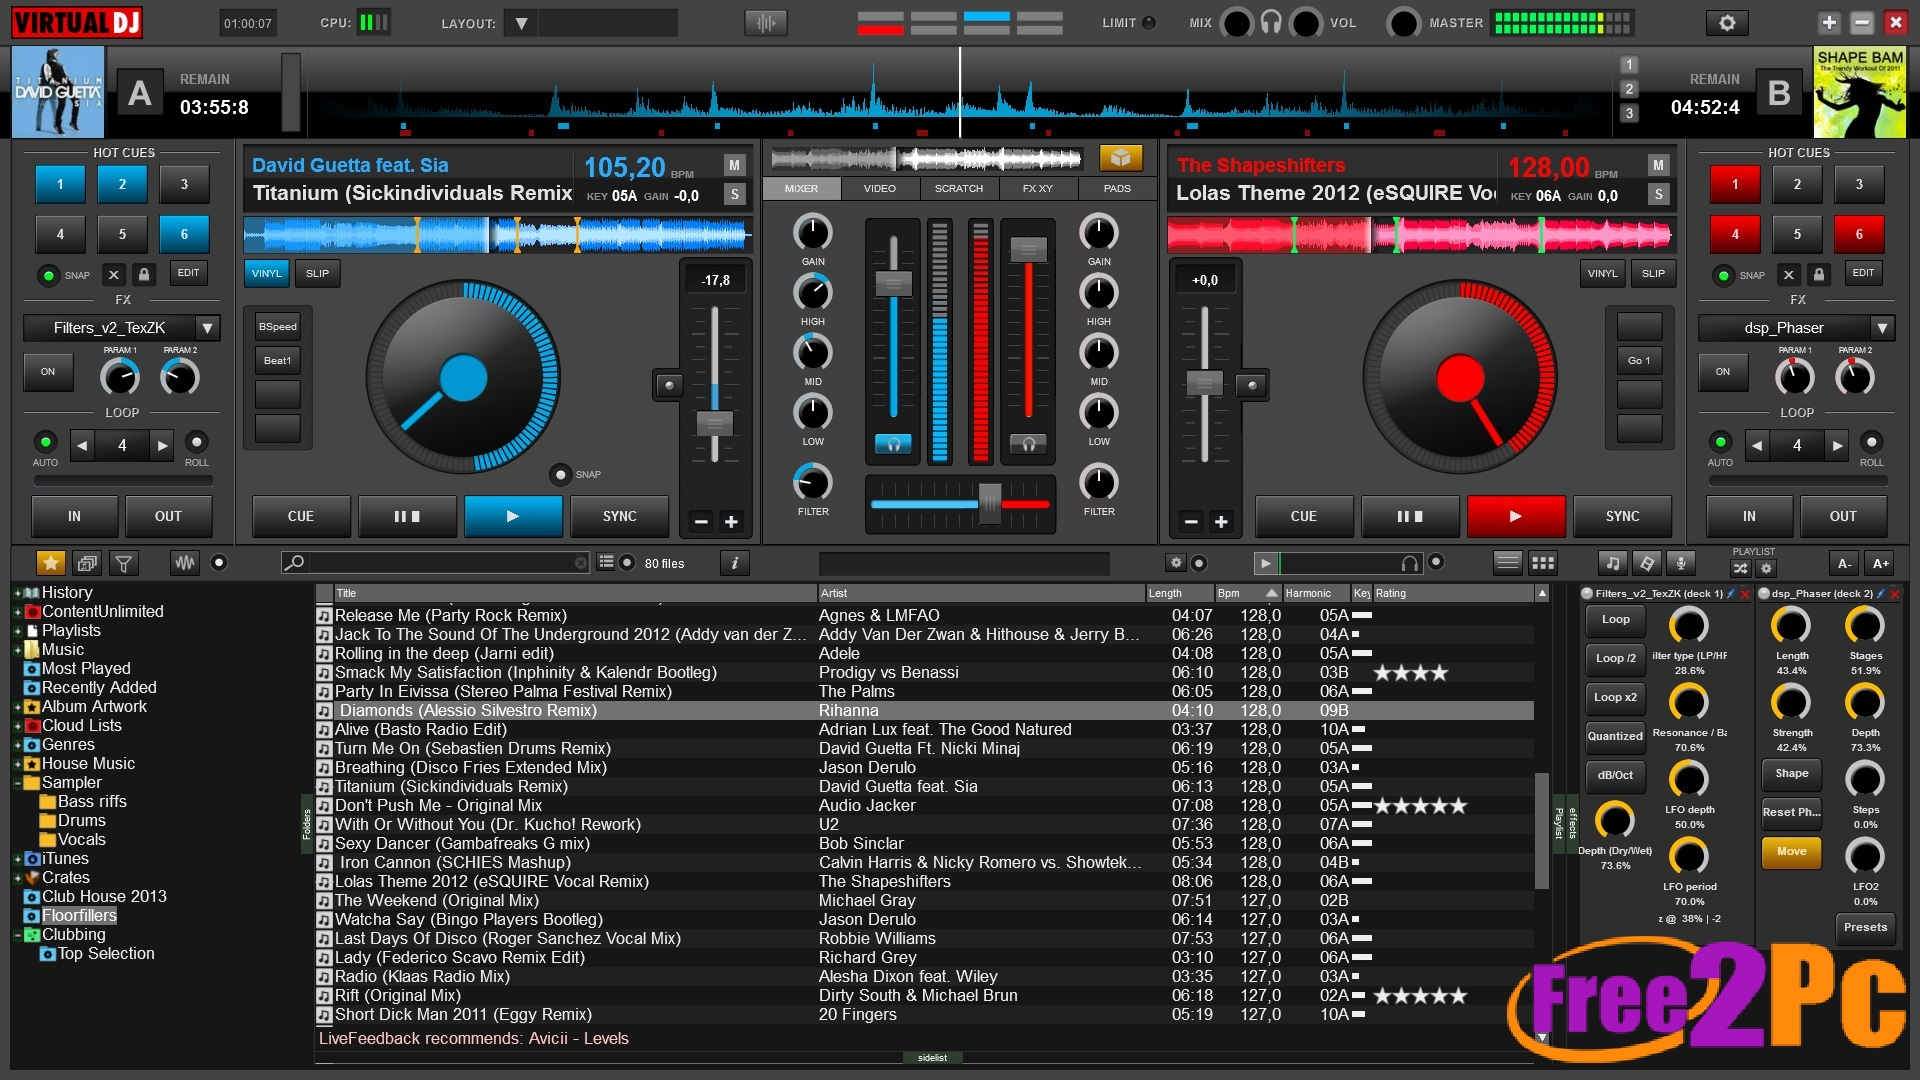 virtual dj version 8 free download